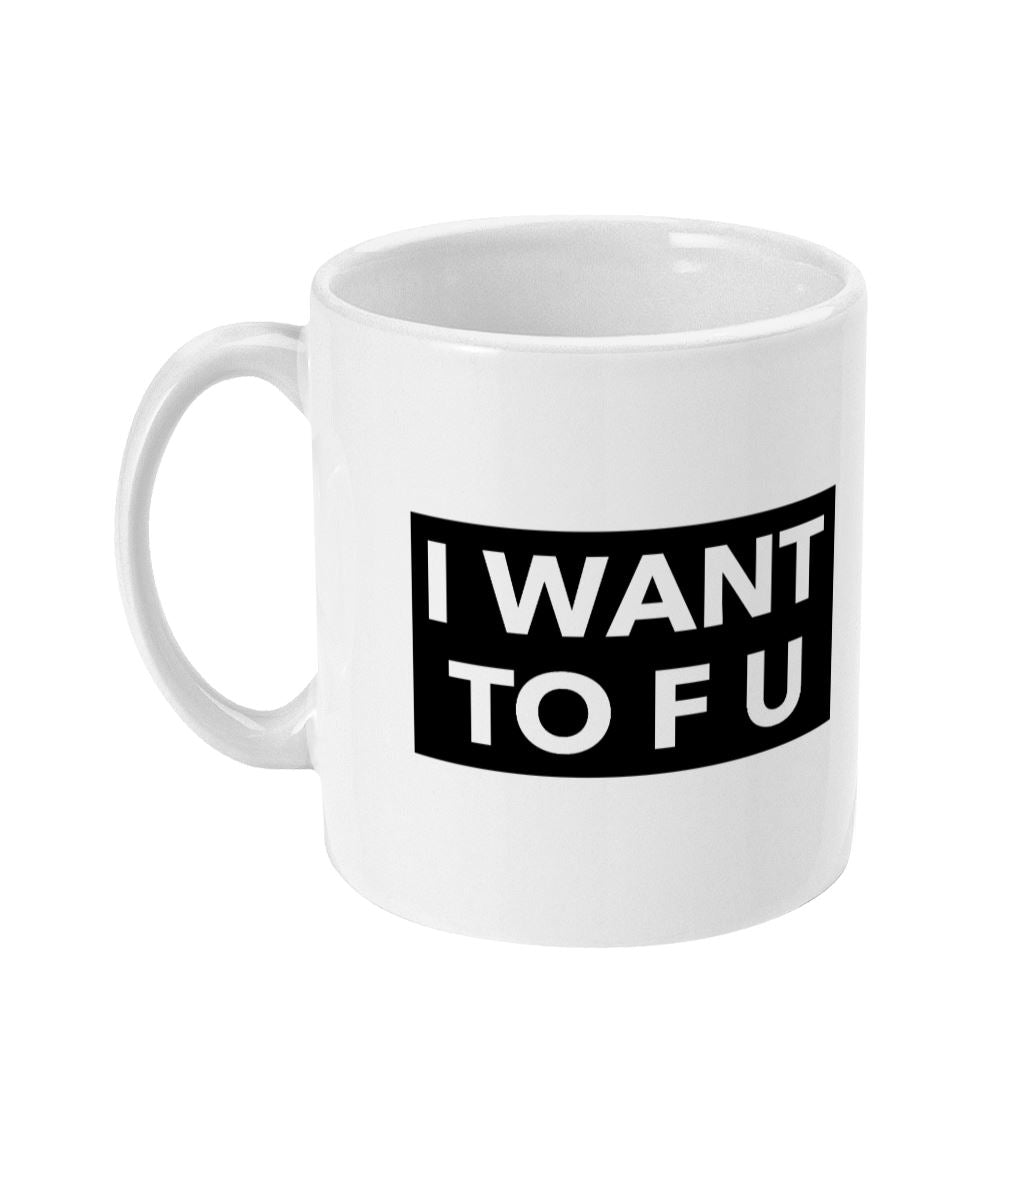 """I Want TO F U"" Vegan Mug Suggested Products Vegan Original Ceramic White"